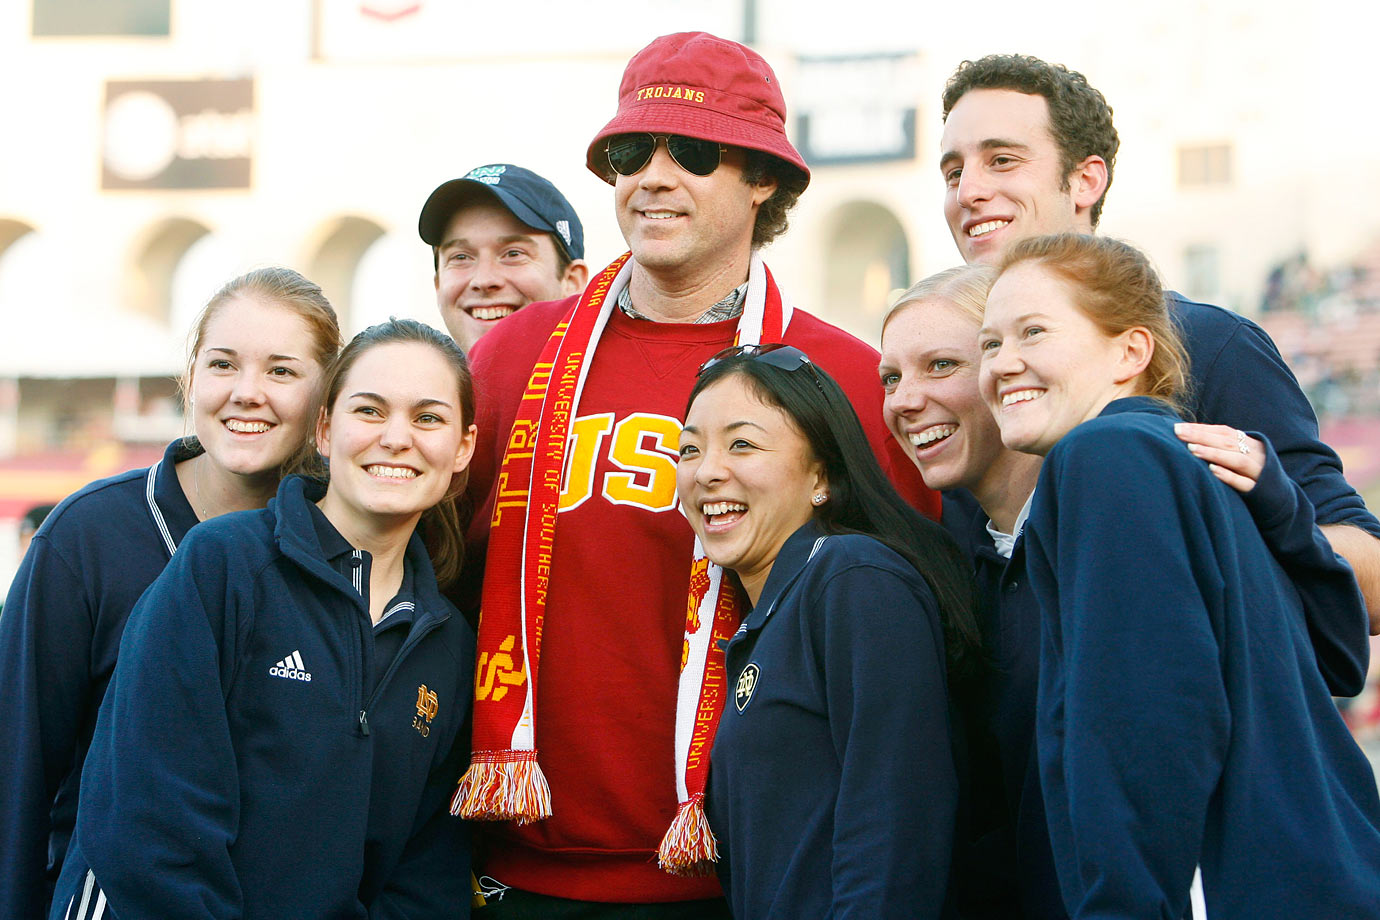 Will Ferrell poses with members of the Notre Dame marching band before USC Trojans game against the Fighting Irish on Nov. 25, 2006 at the Los Angeles Memorial Coliseum.